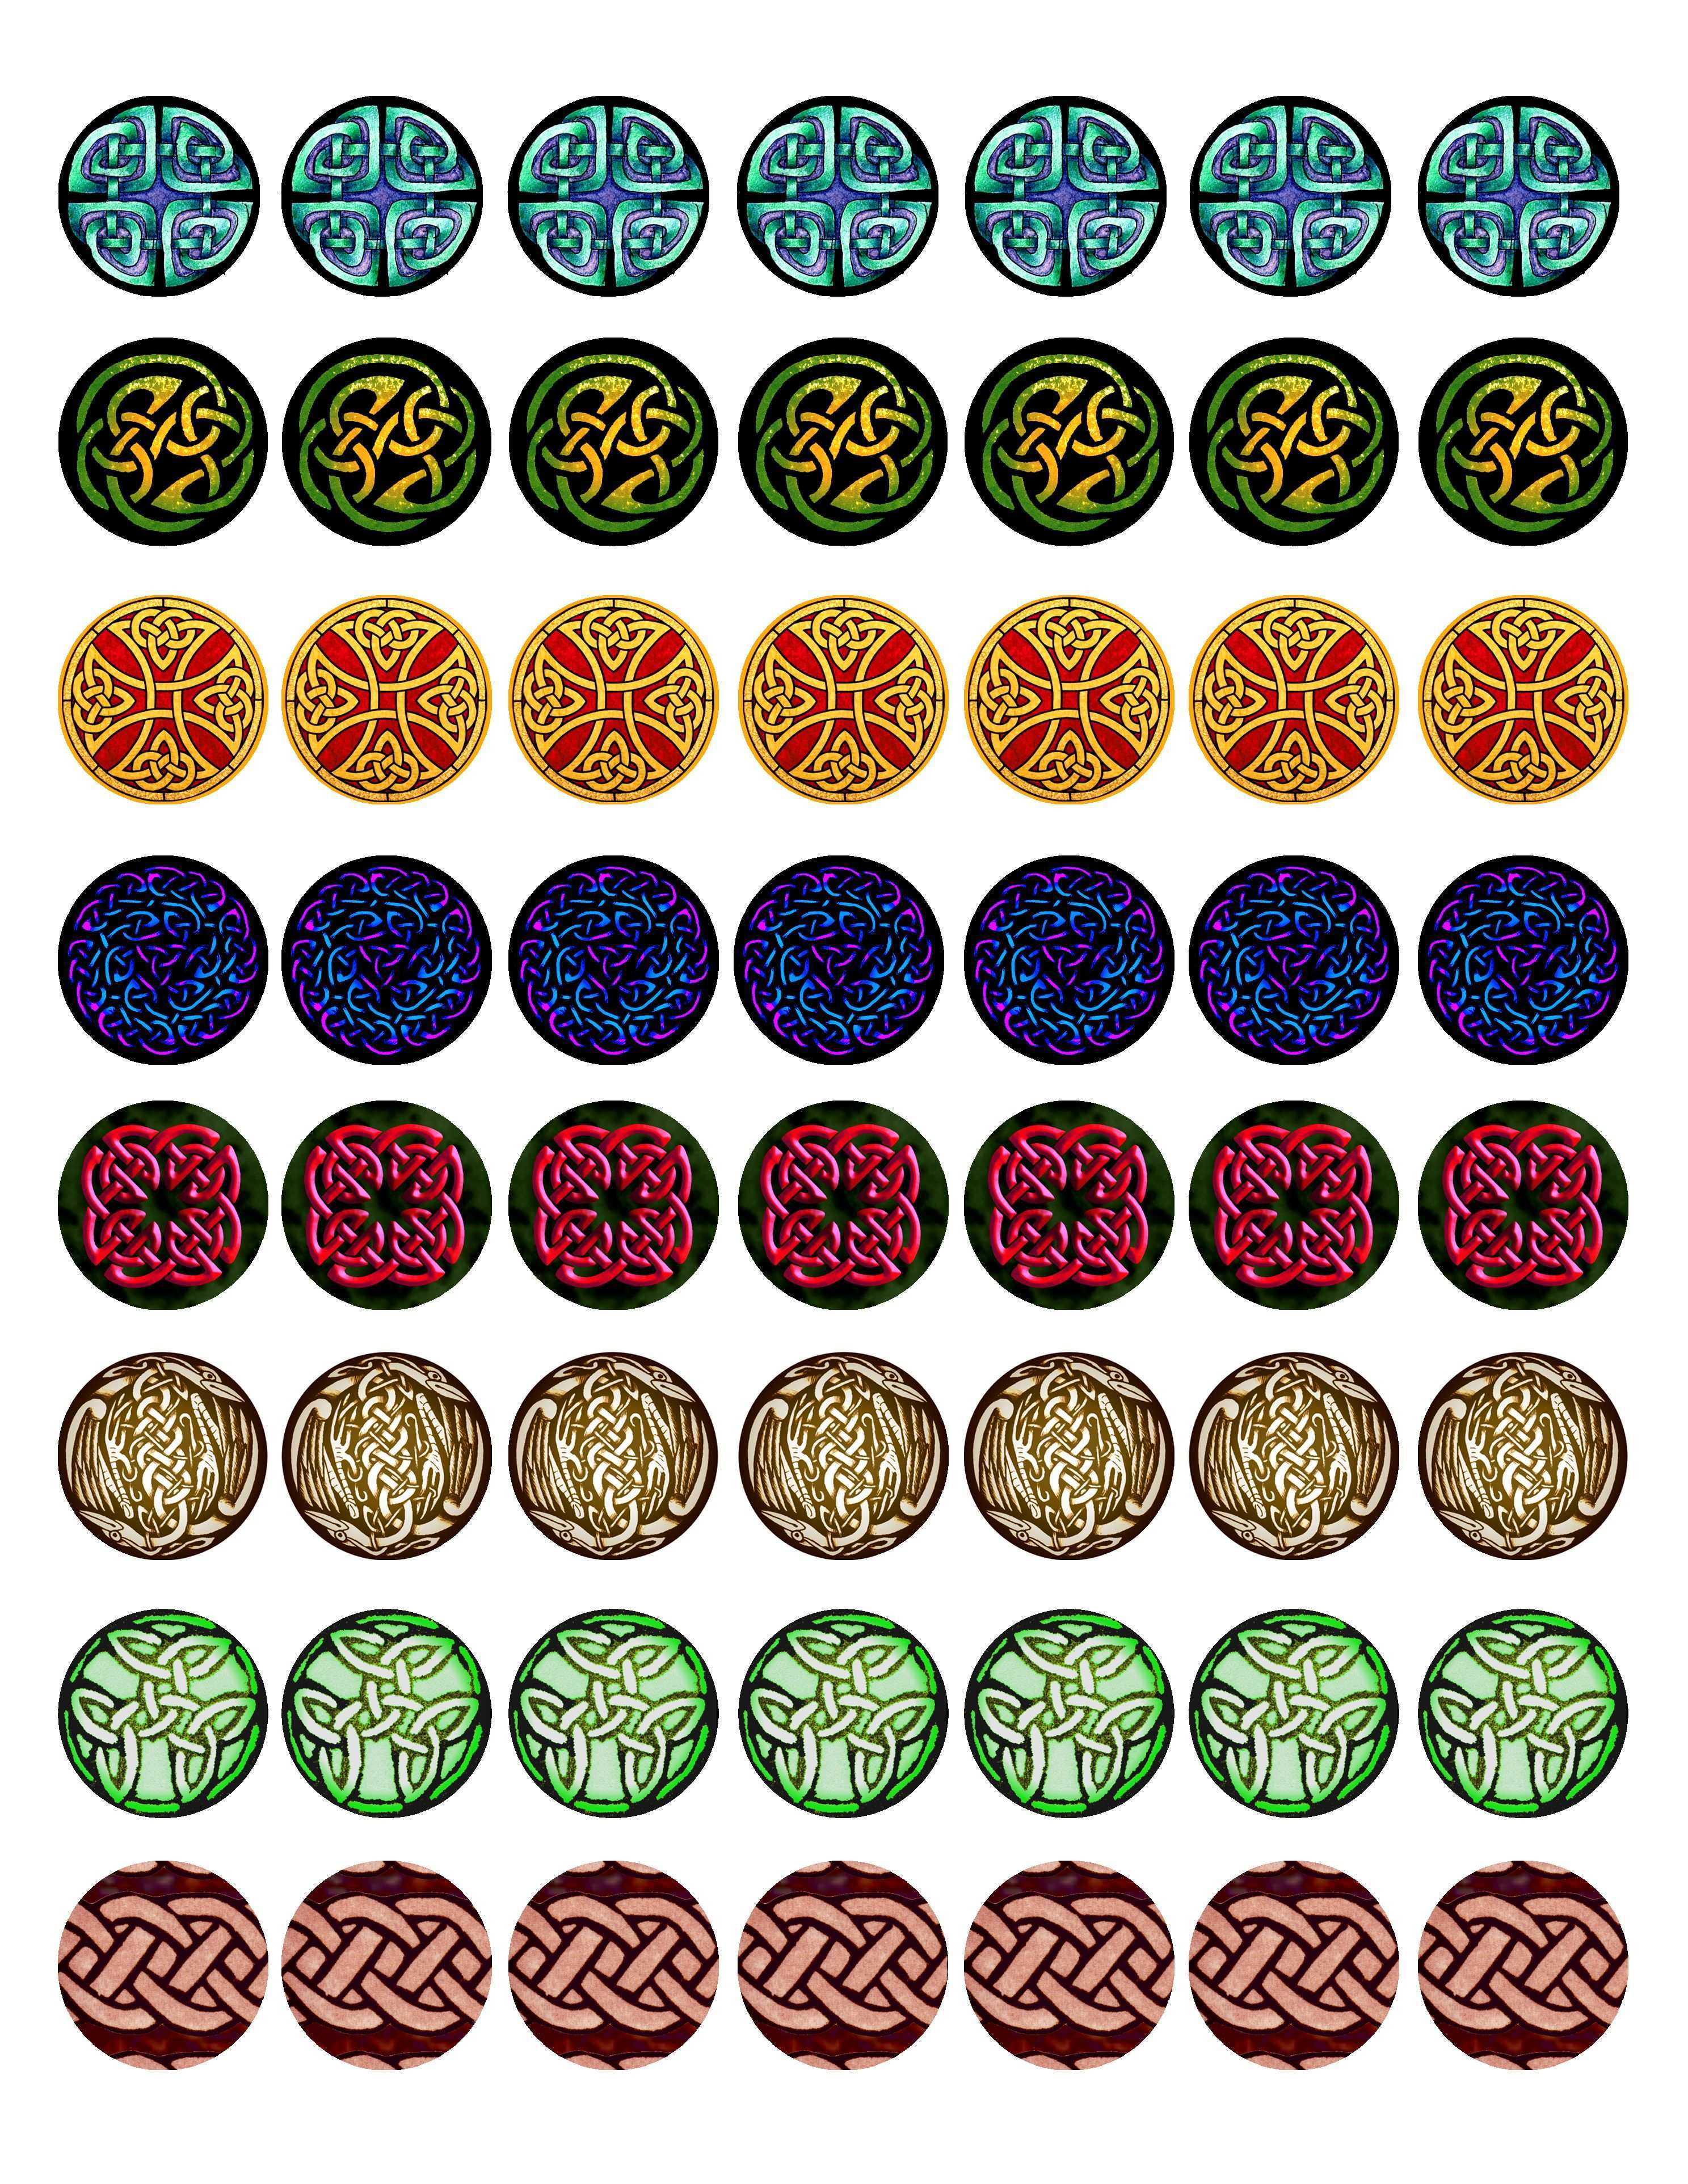 Free Bottle Cap Images Celtic Knot Work Full Sheet Collection 2 High Resolution Formatted For Printi Bottle Cap Jewelry Bottle Cap Crafts Bottle Cap Images